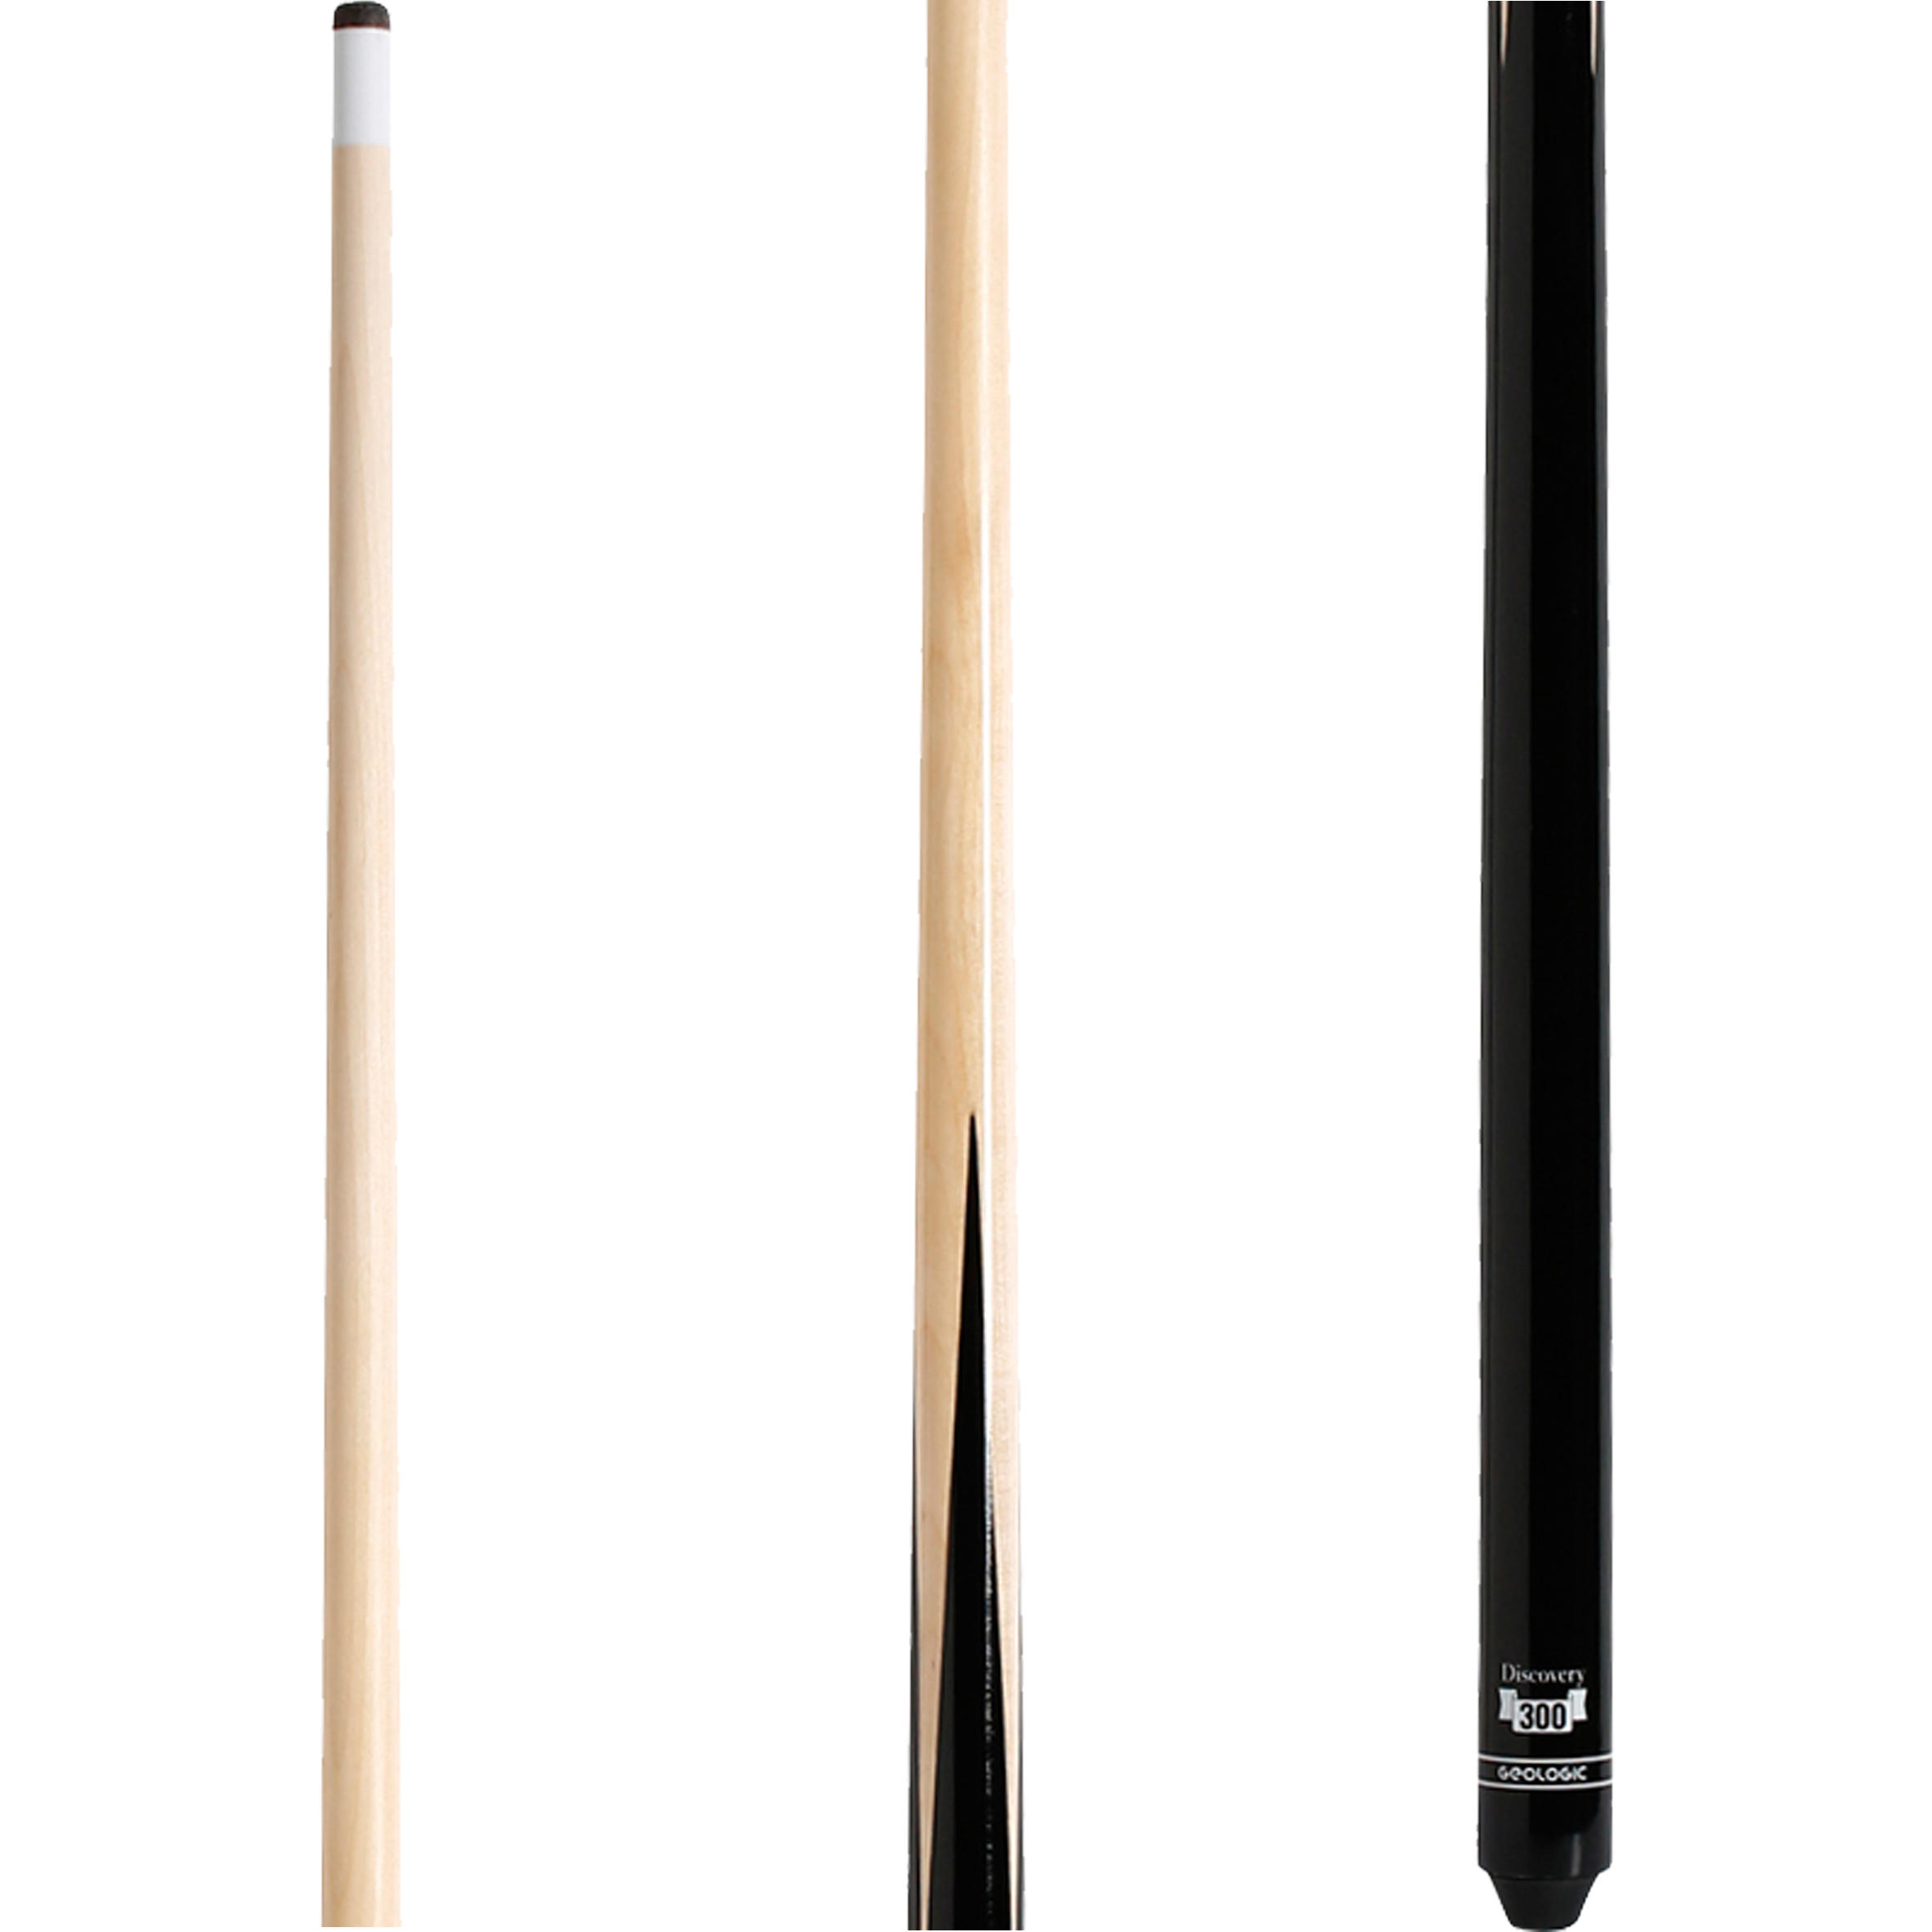 Discovery 300 American Pool Cue, 1-Part - 145 cm (57